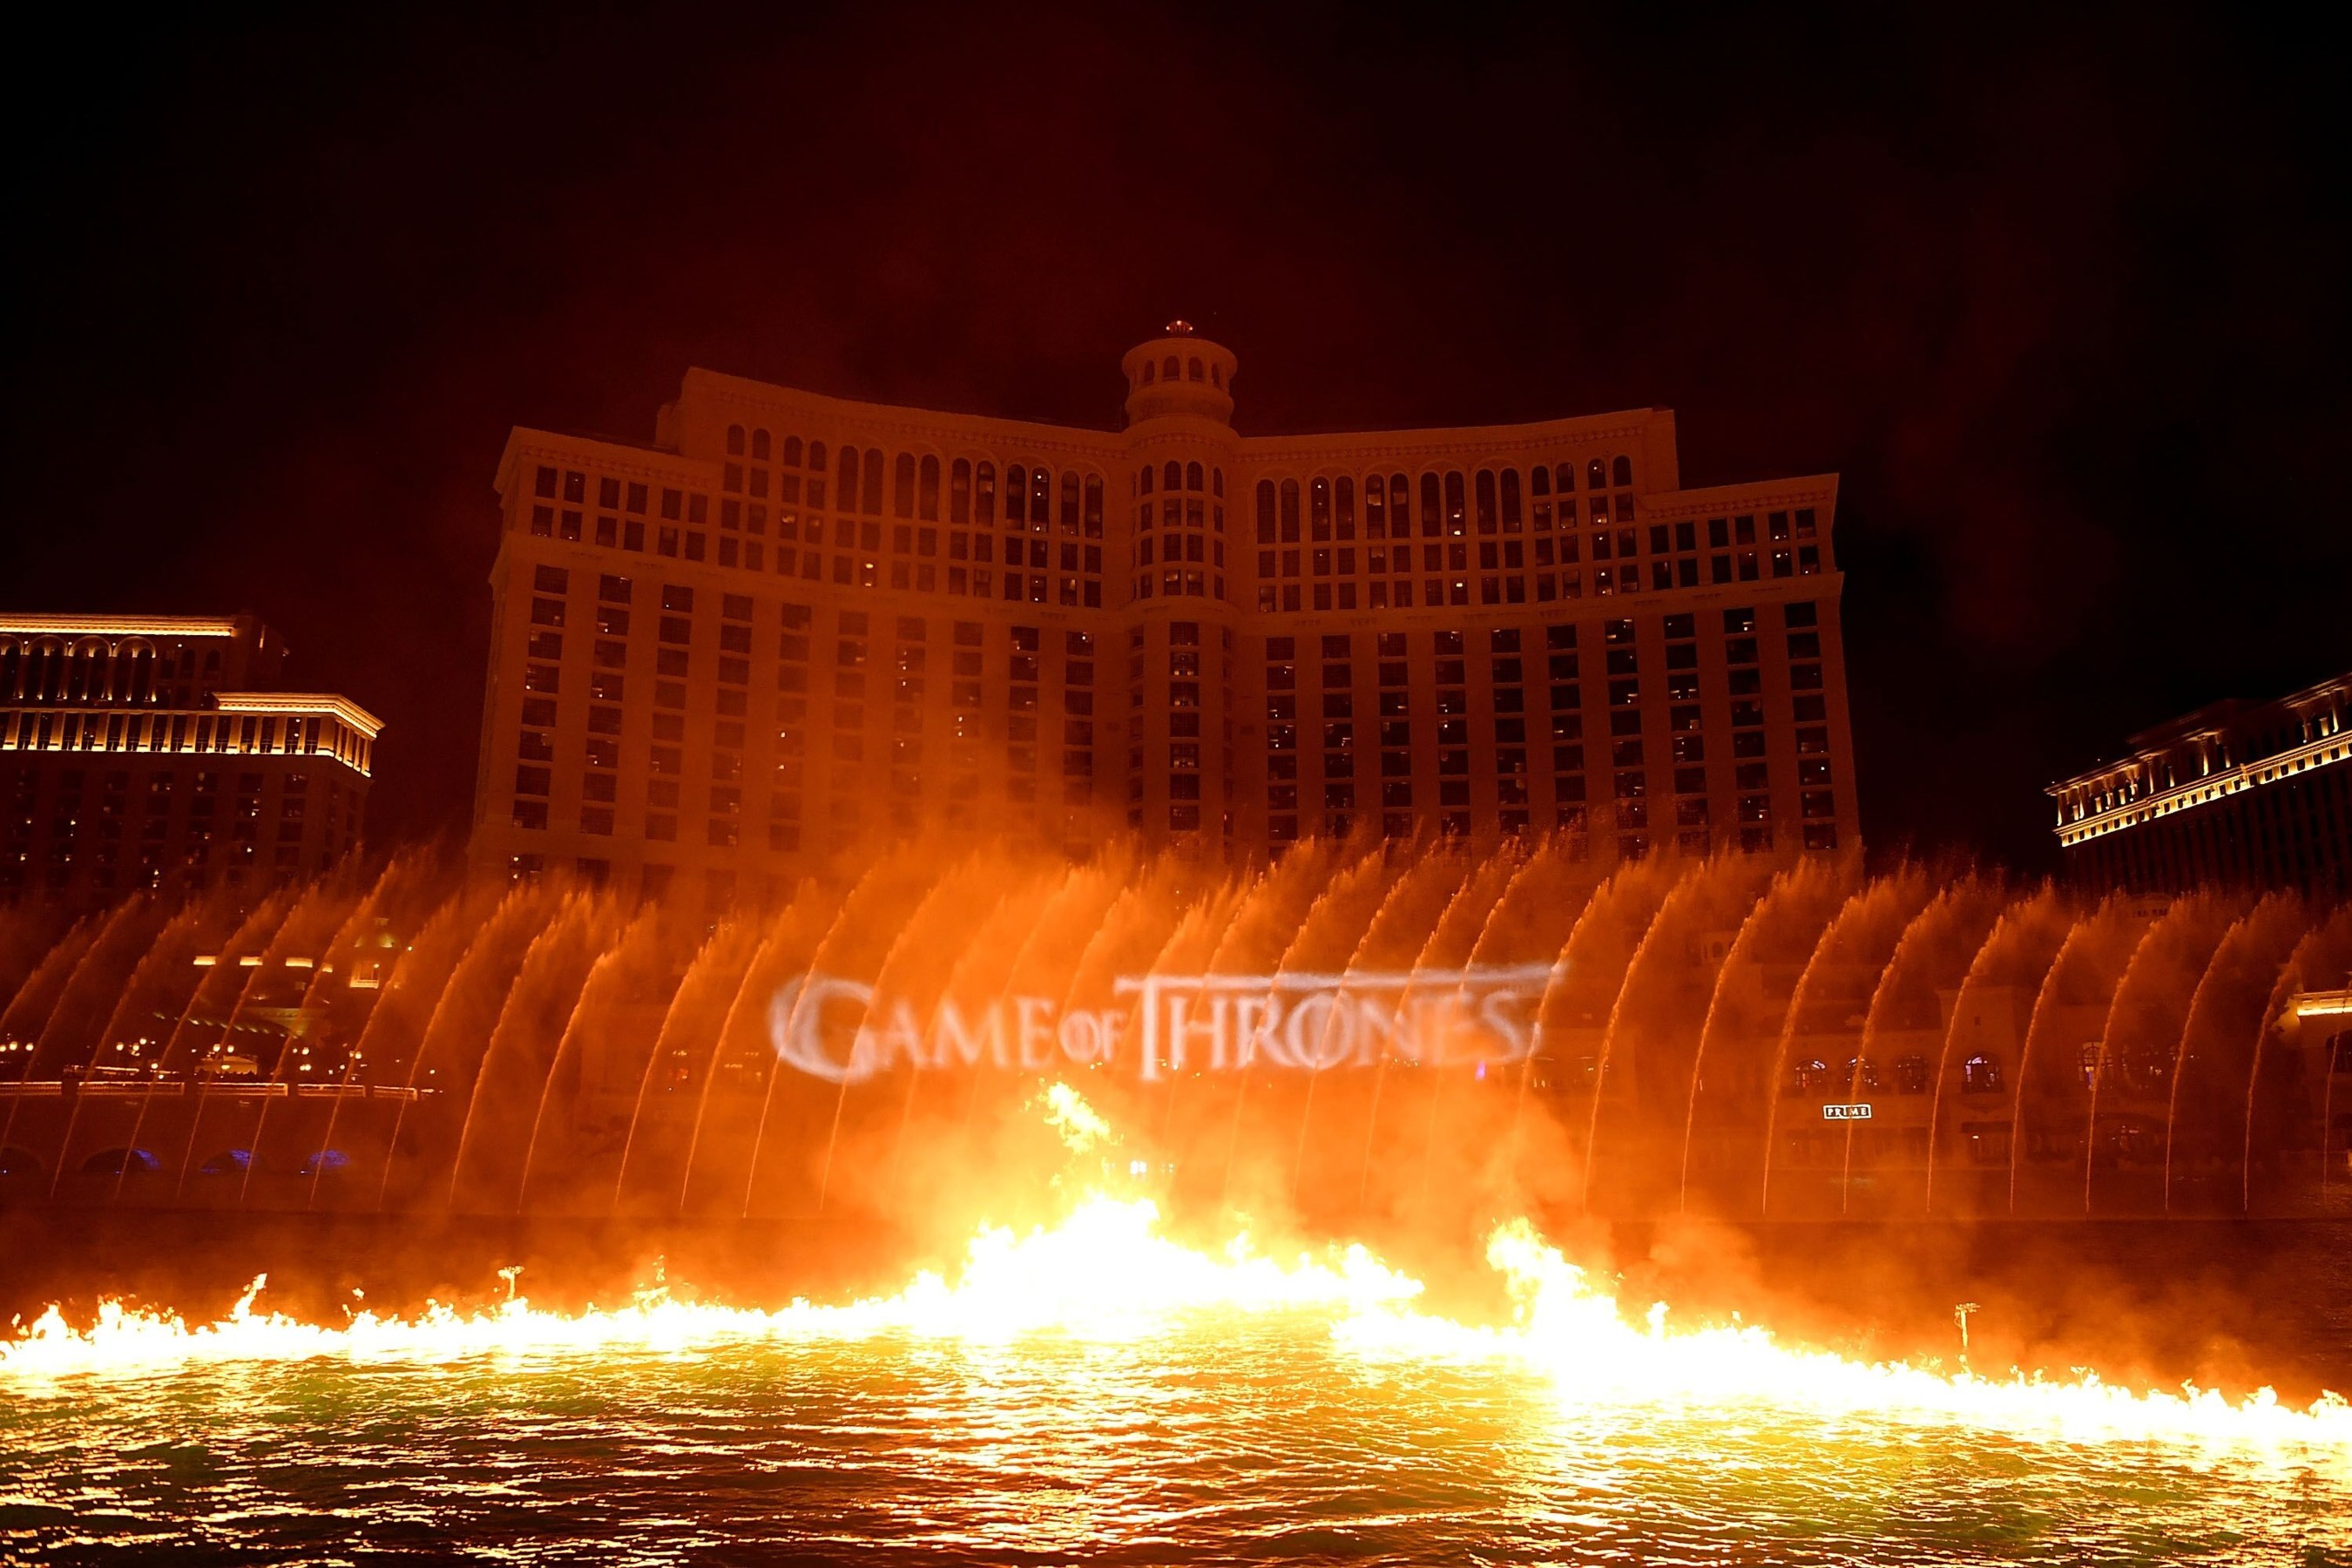 game of thrones, bellagio